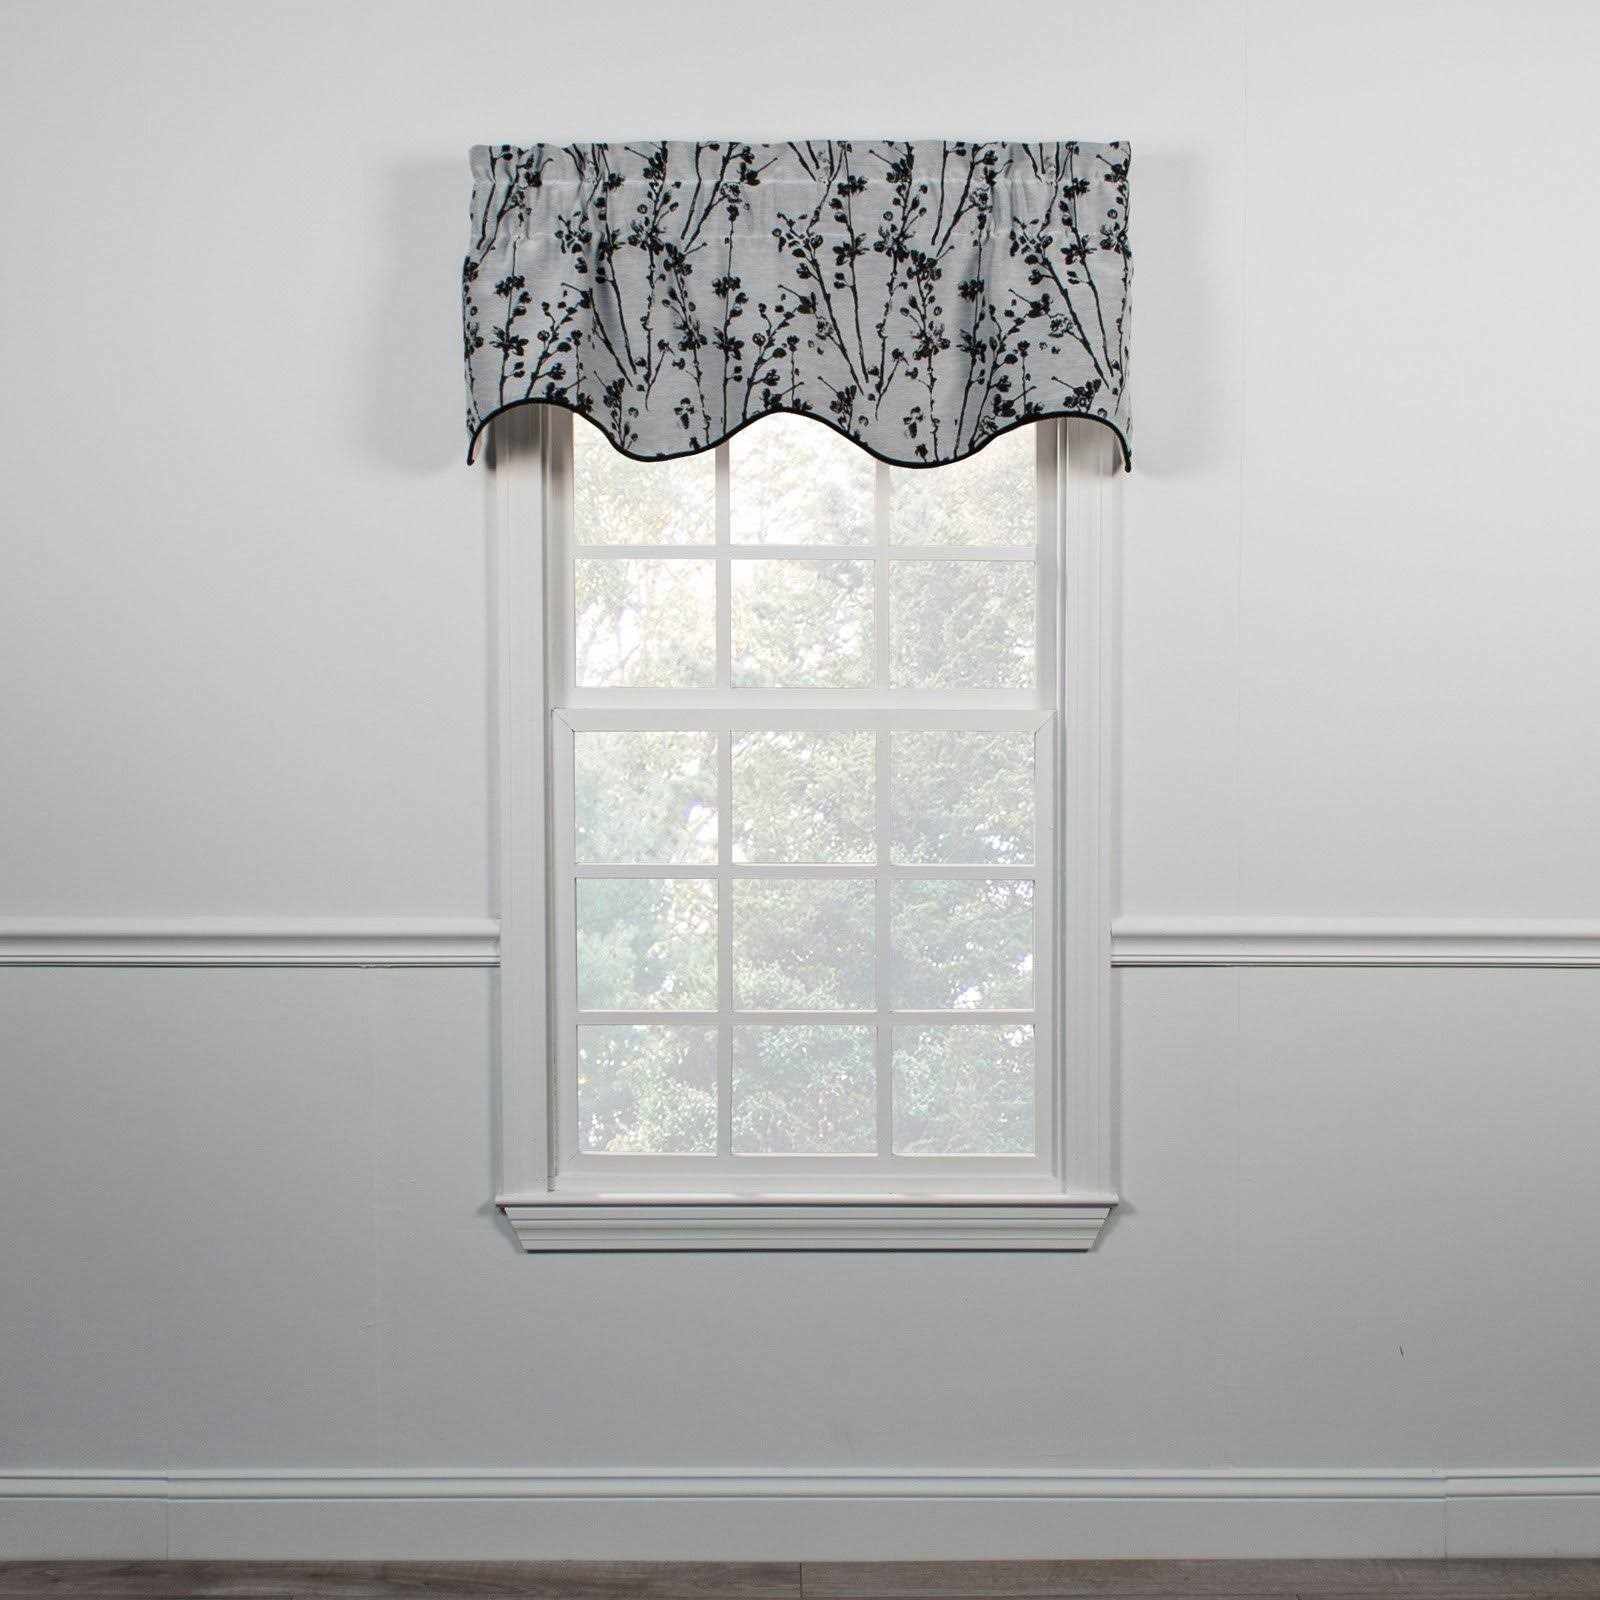 Ellis Curtain Meadow Lined Scallop Valance